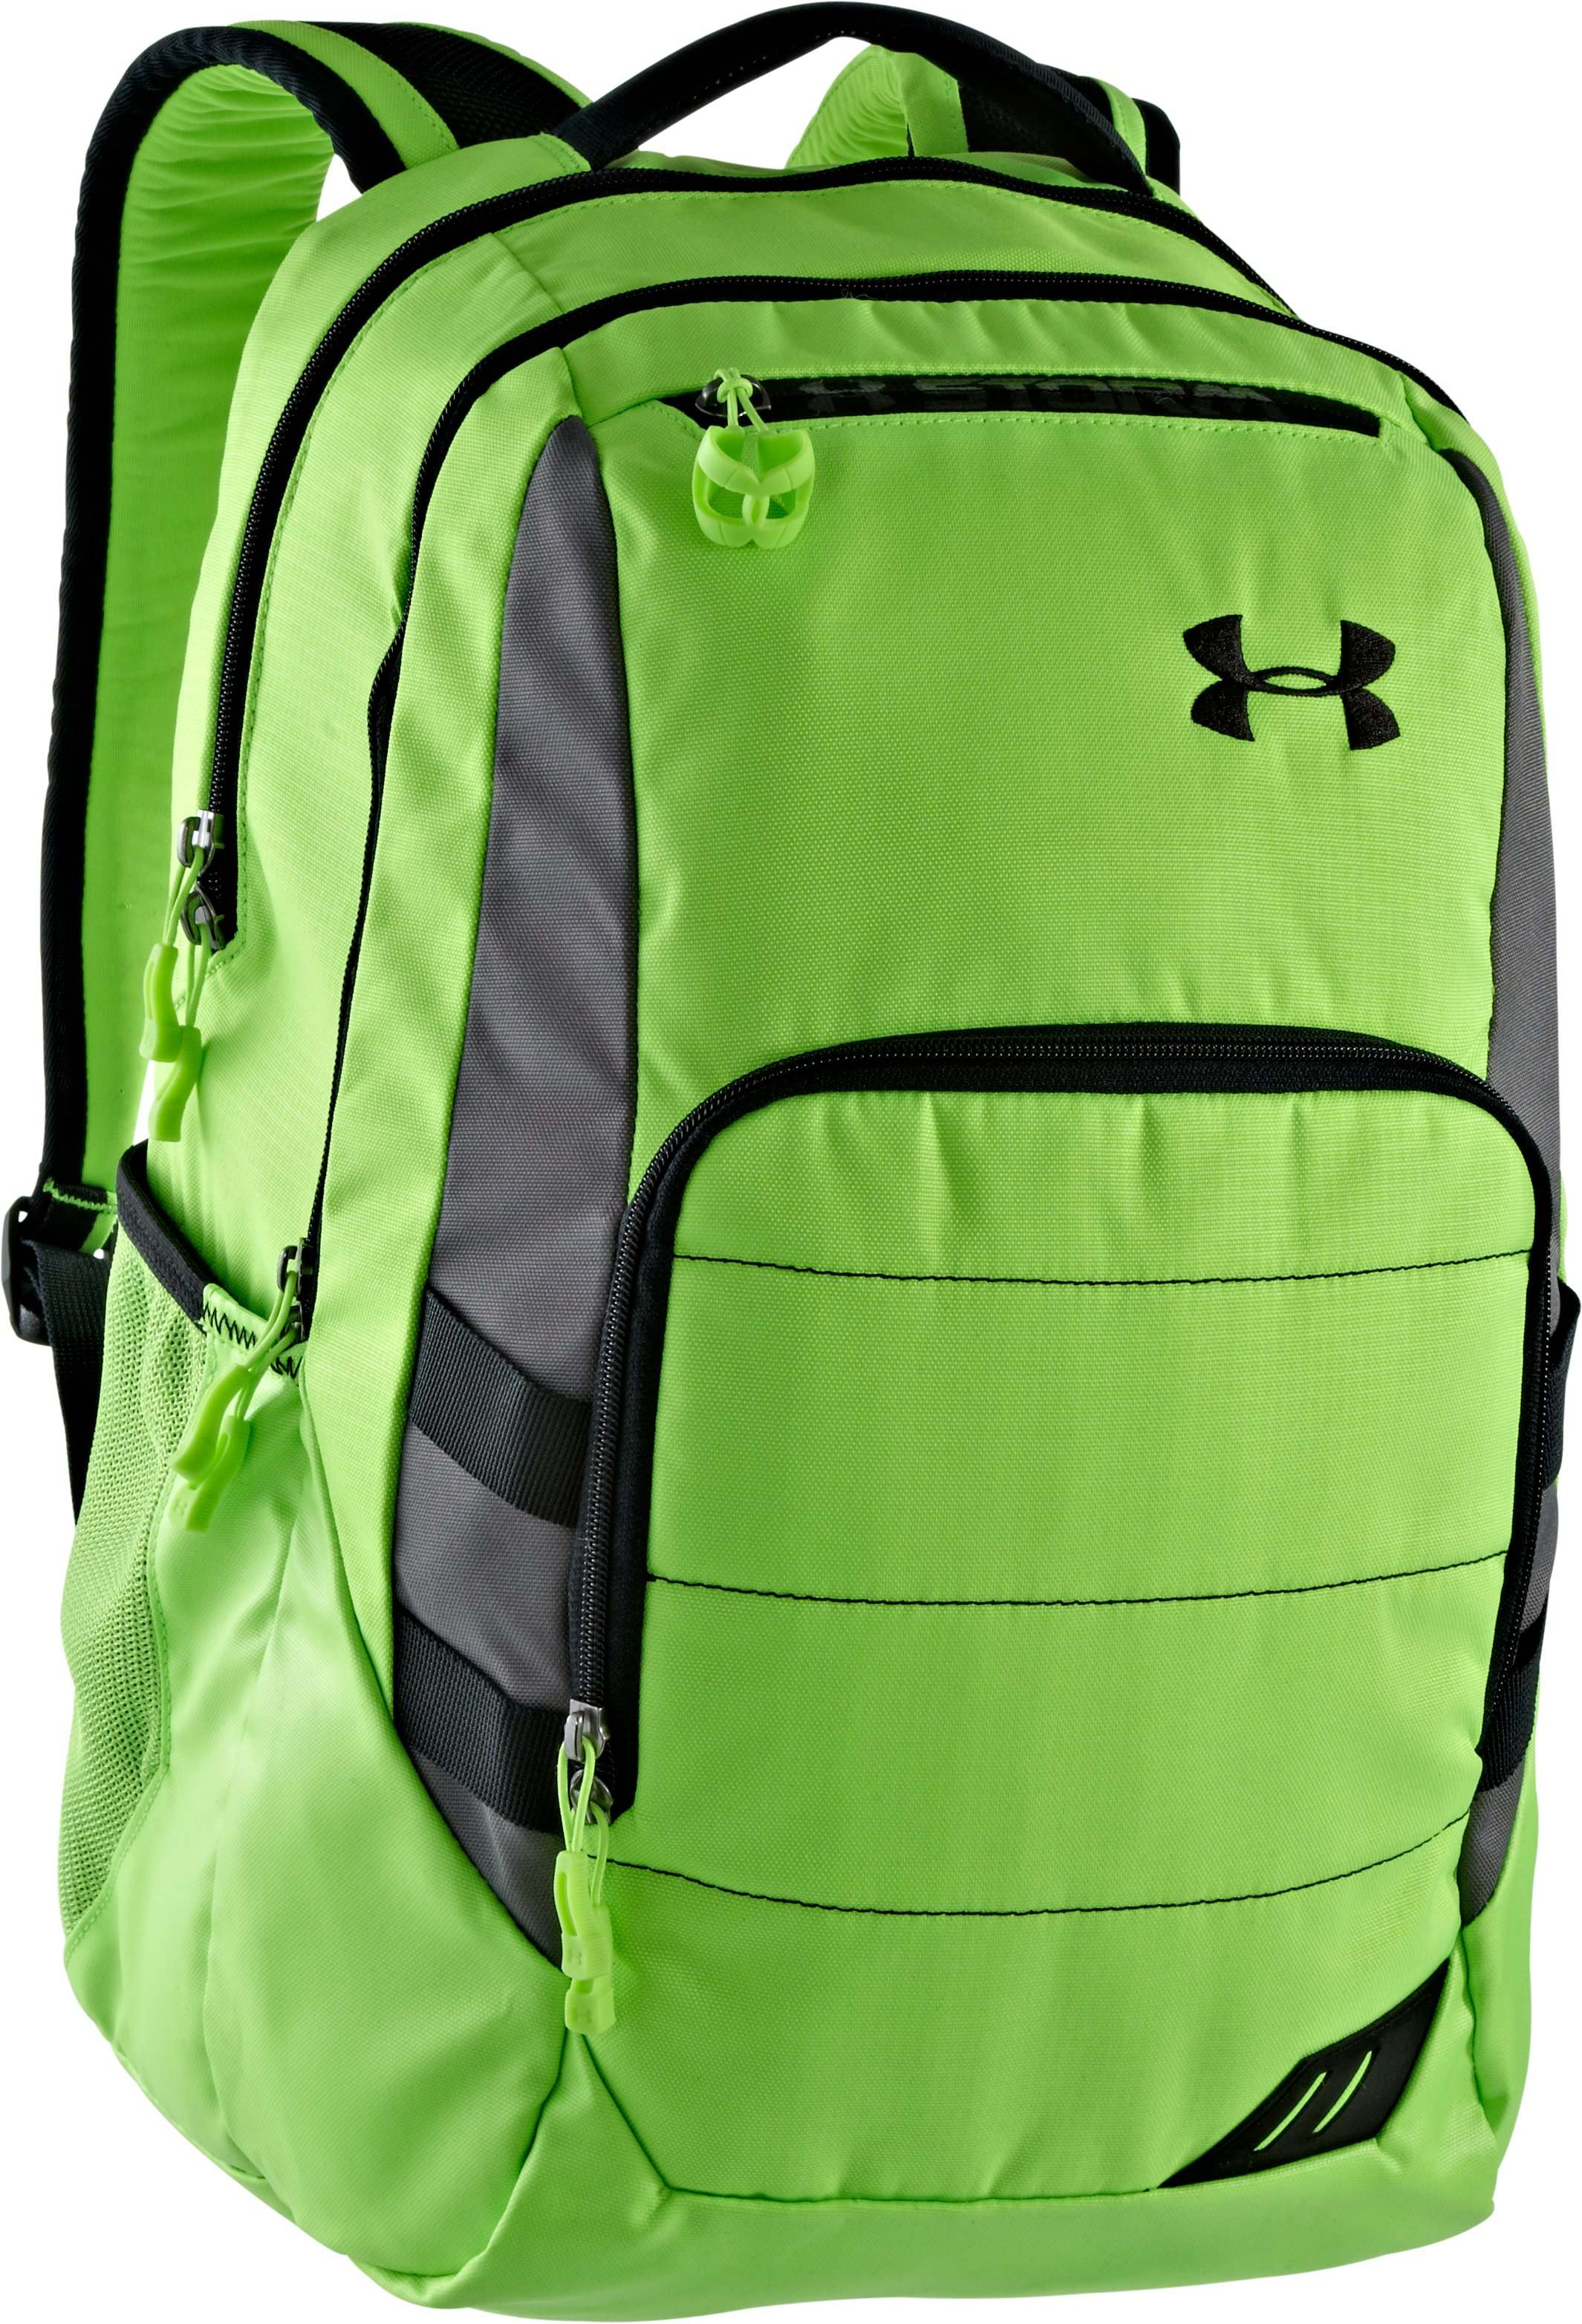 UA Camden Storm Backpack, HYPER GREEN